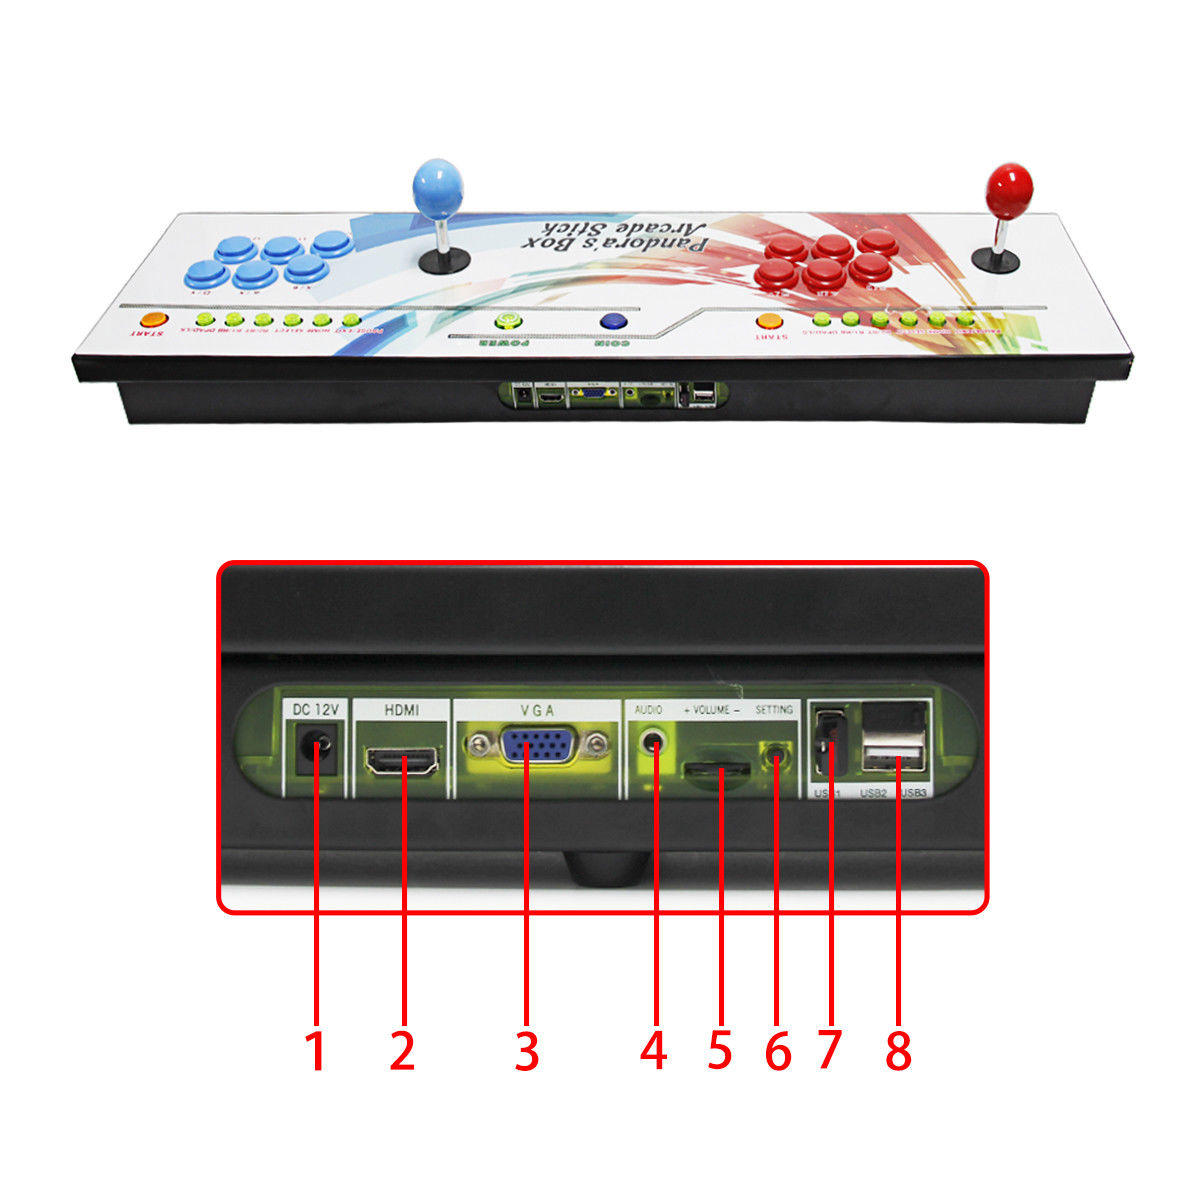 Pandoras Box 6 - 2in1 Fightstick and Arcade Console with 1300 games - back buttons